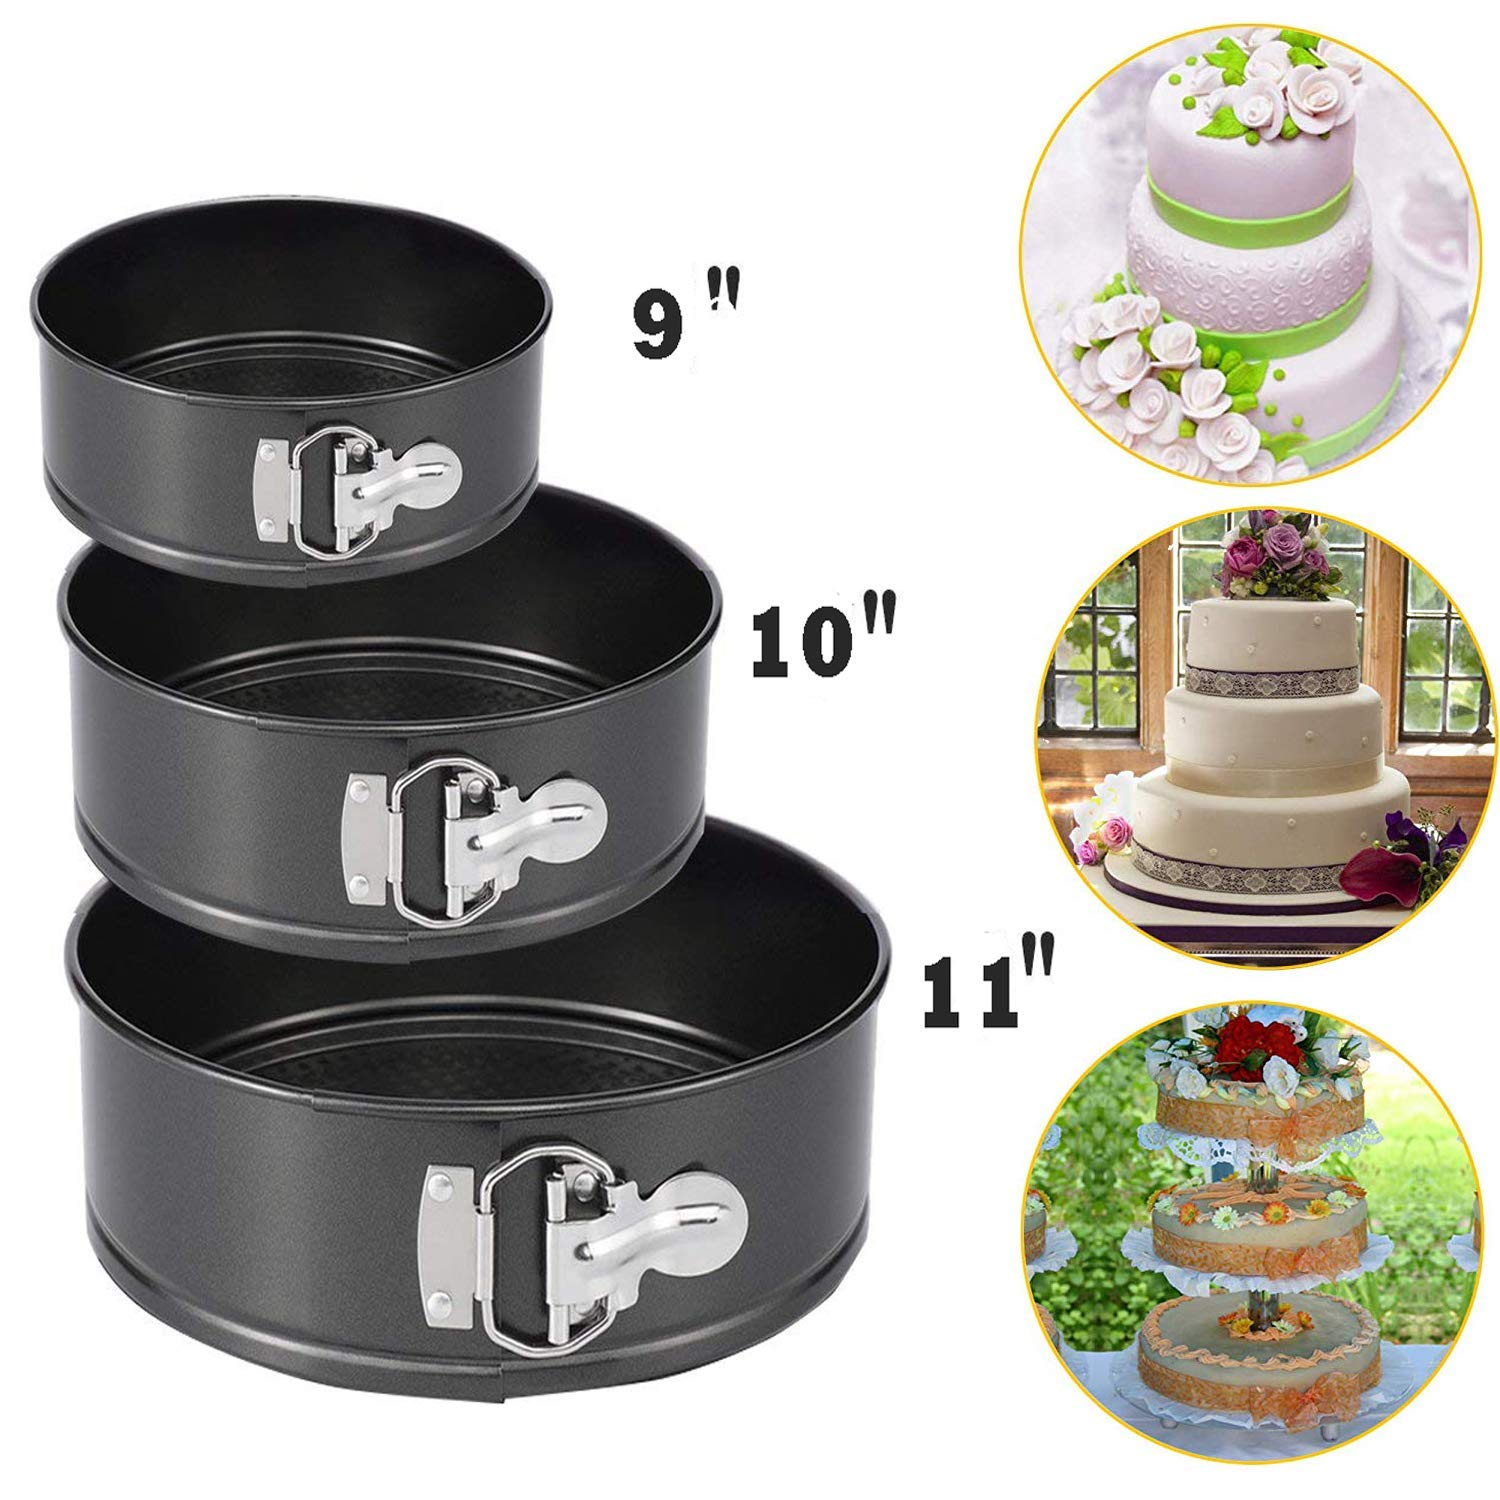 """Springform Pan Set Cake Mold Set, Nonstick Leakproof 3pcs (9""""/10""""/11"""") Cake Pan Bakeware Cheesecake for Party, Home Gathering, Kitchen, Feast and Holidays"""